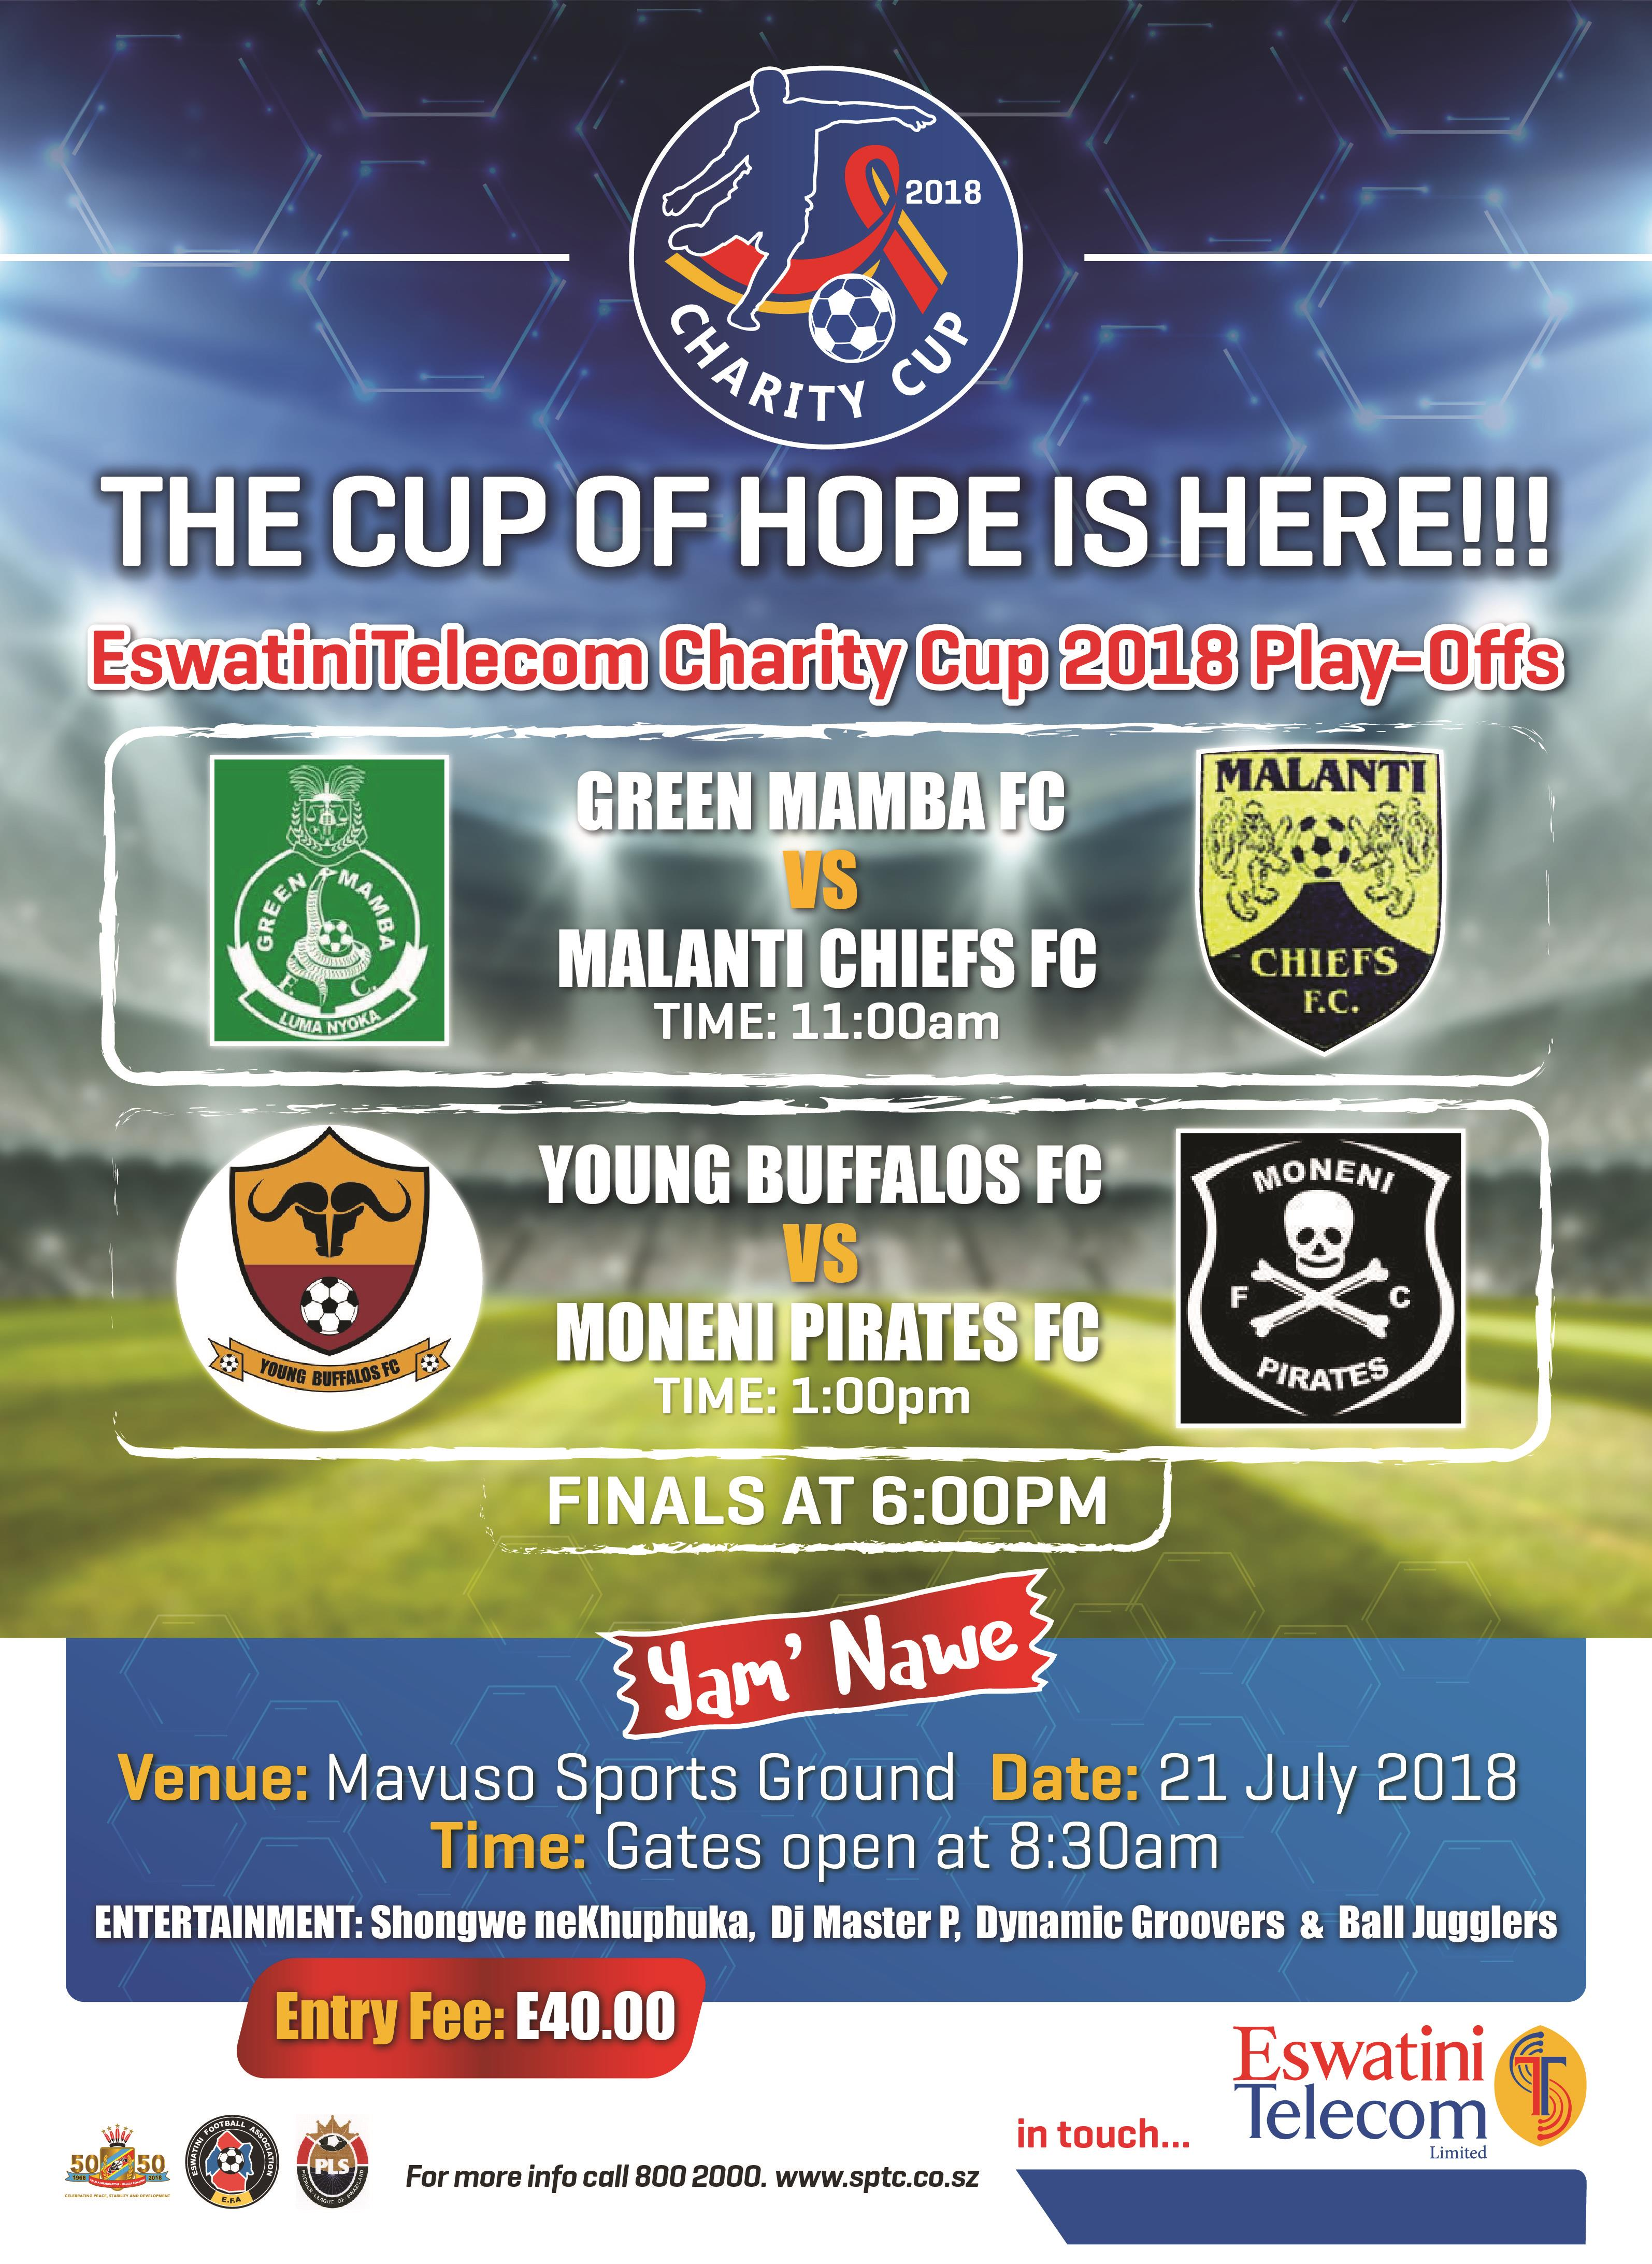 EswatiniTelecom Charity Cup 2018 Play-Offs